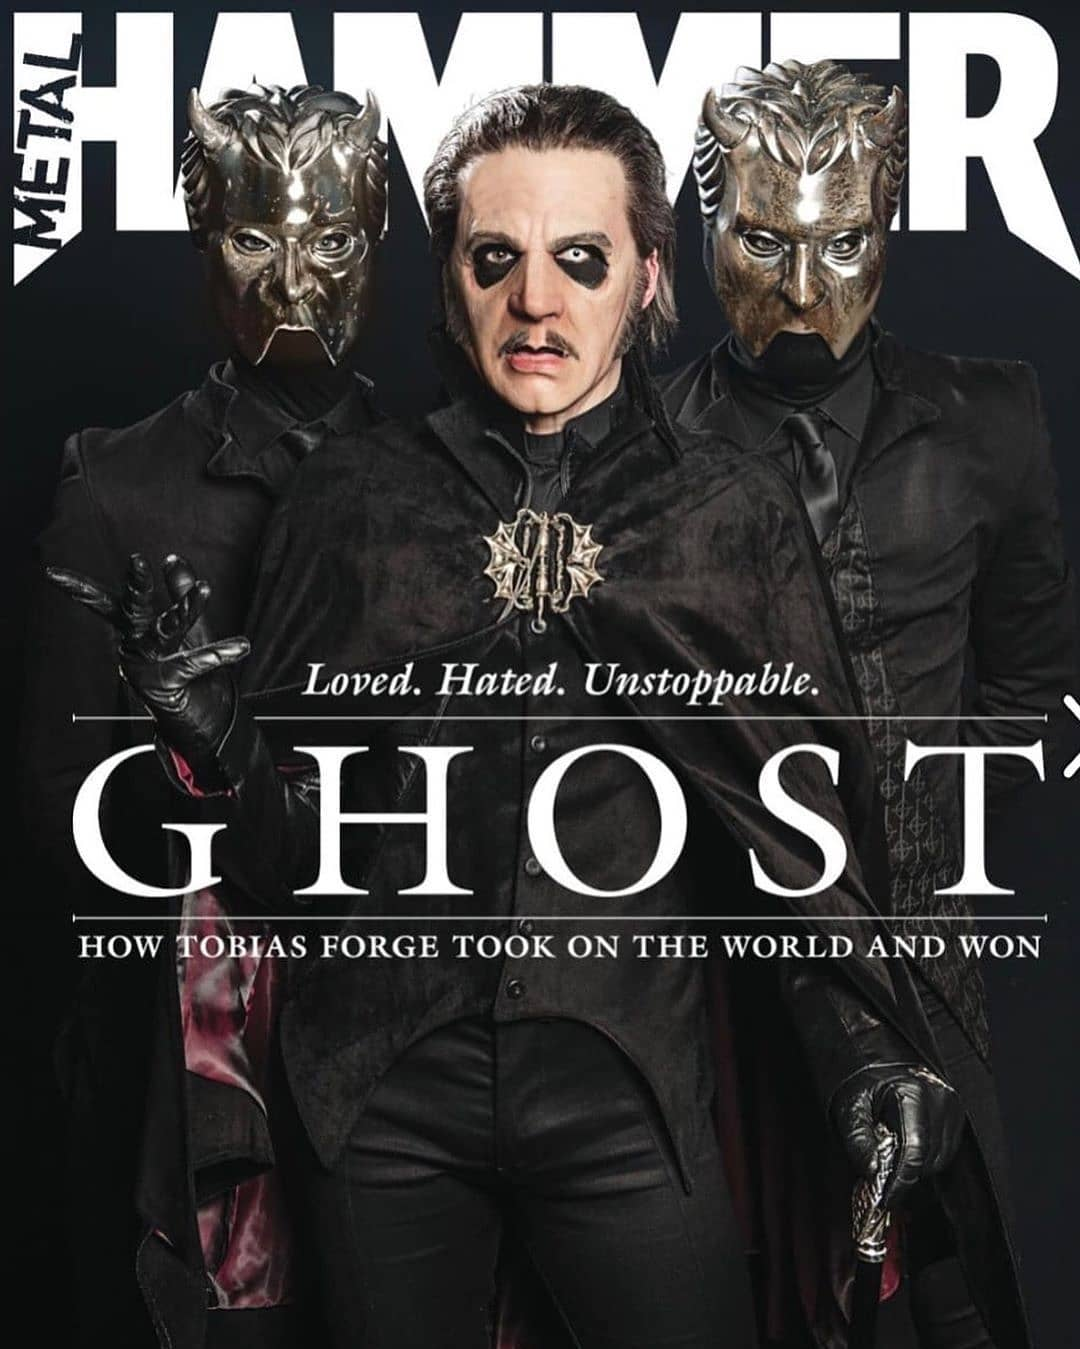 UK Metal Hammer Magazine #320 April 2019 - Ghost - Tobias Forge Cover #1